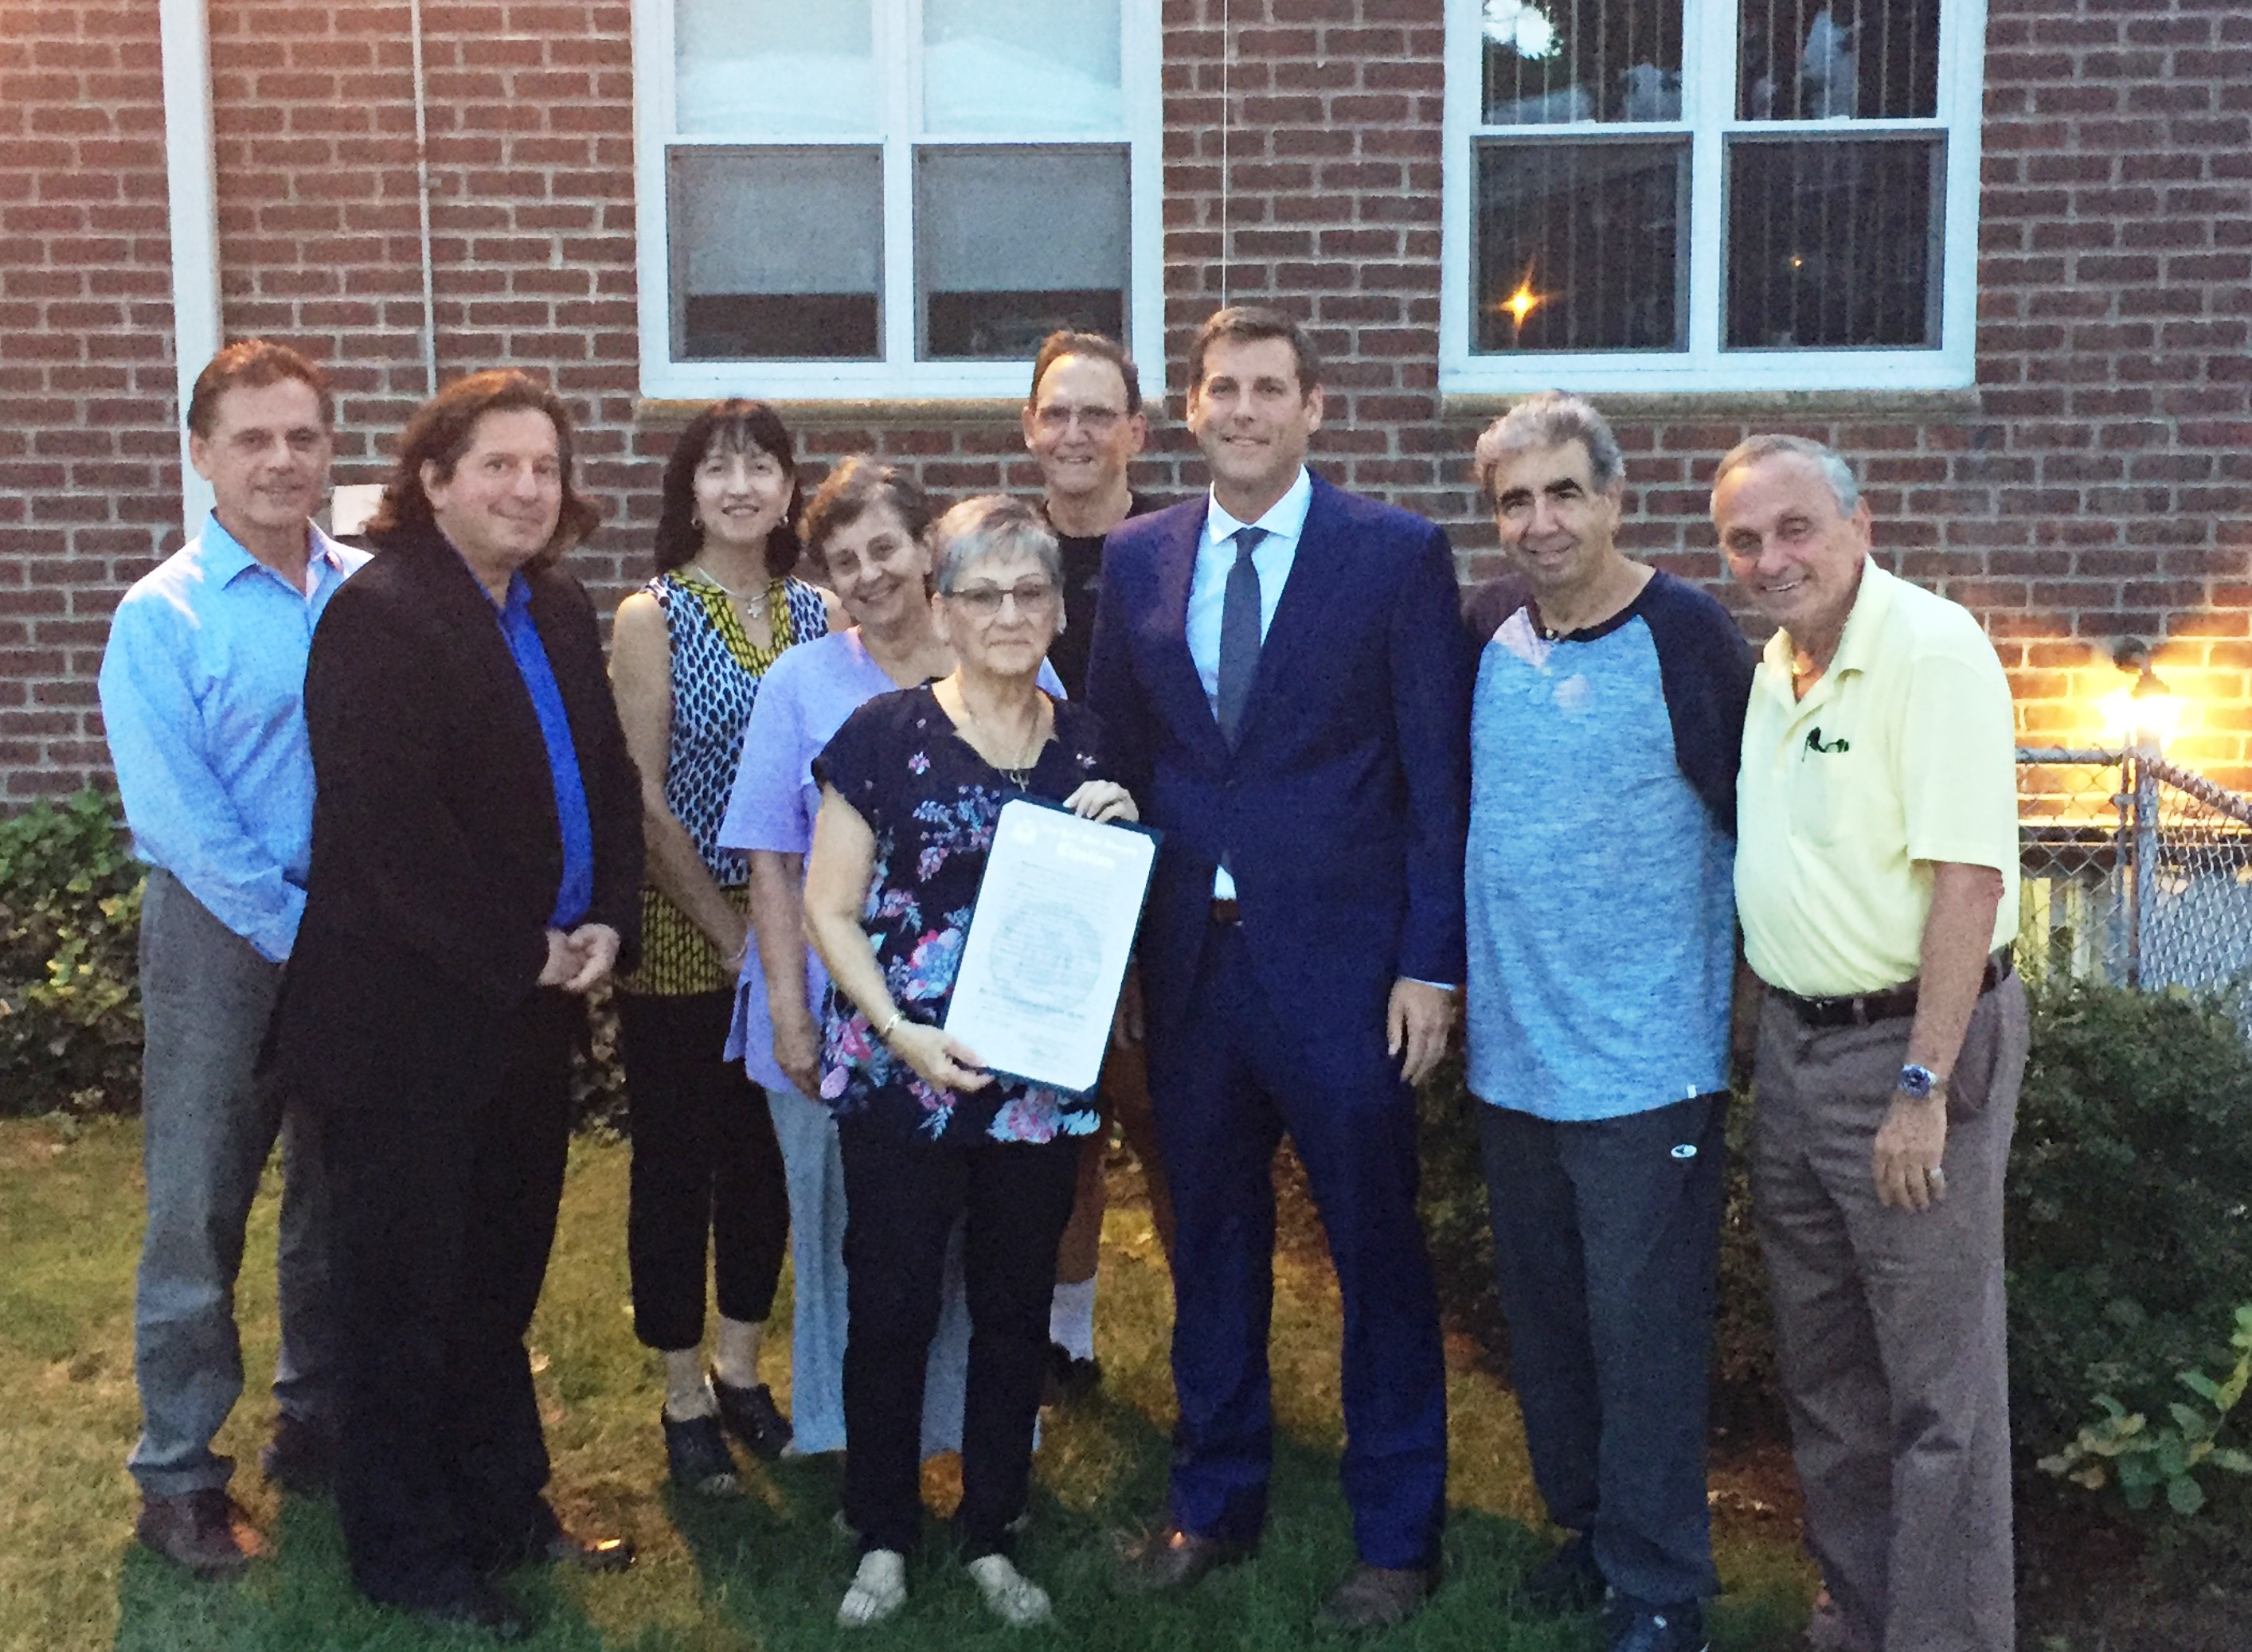 On September 26, 2018, Assemblyman Braunstein presented Bay Terrace Cooperative Section III with a NYS Assembly Citation in honor of its historic purchase of the land under its buildings.